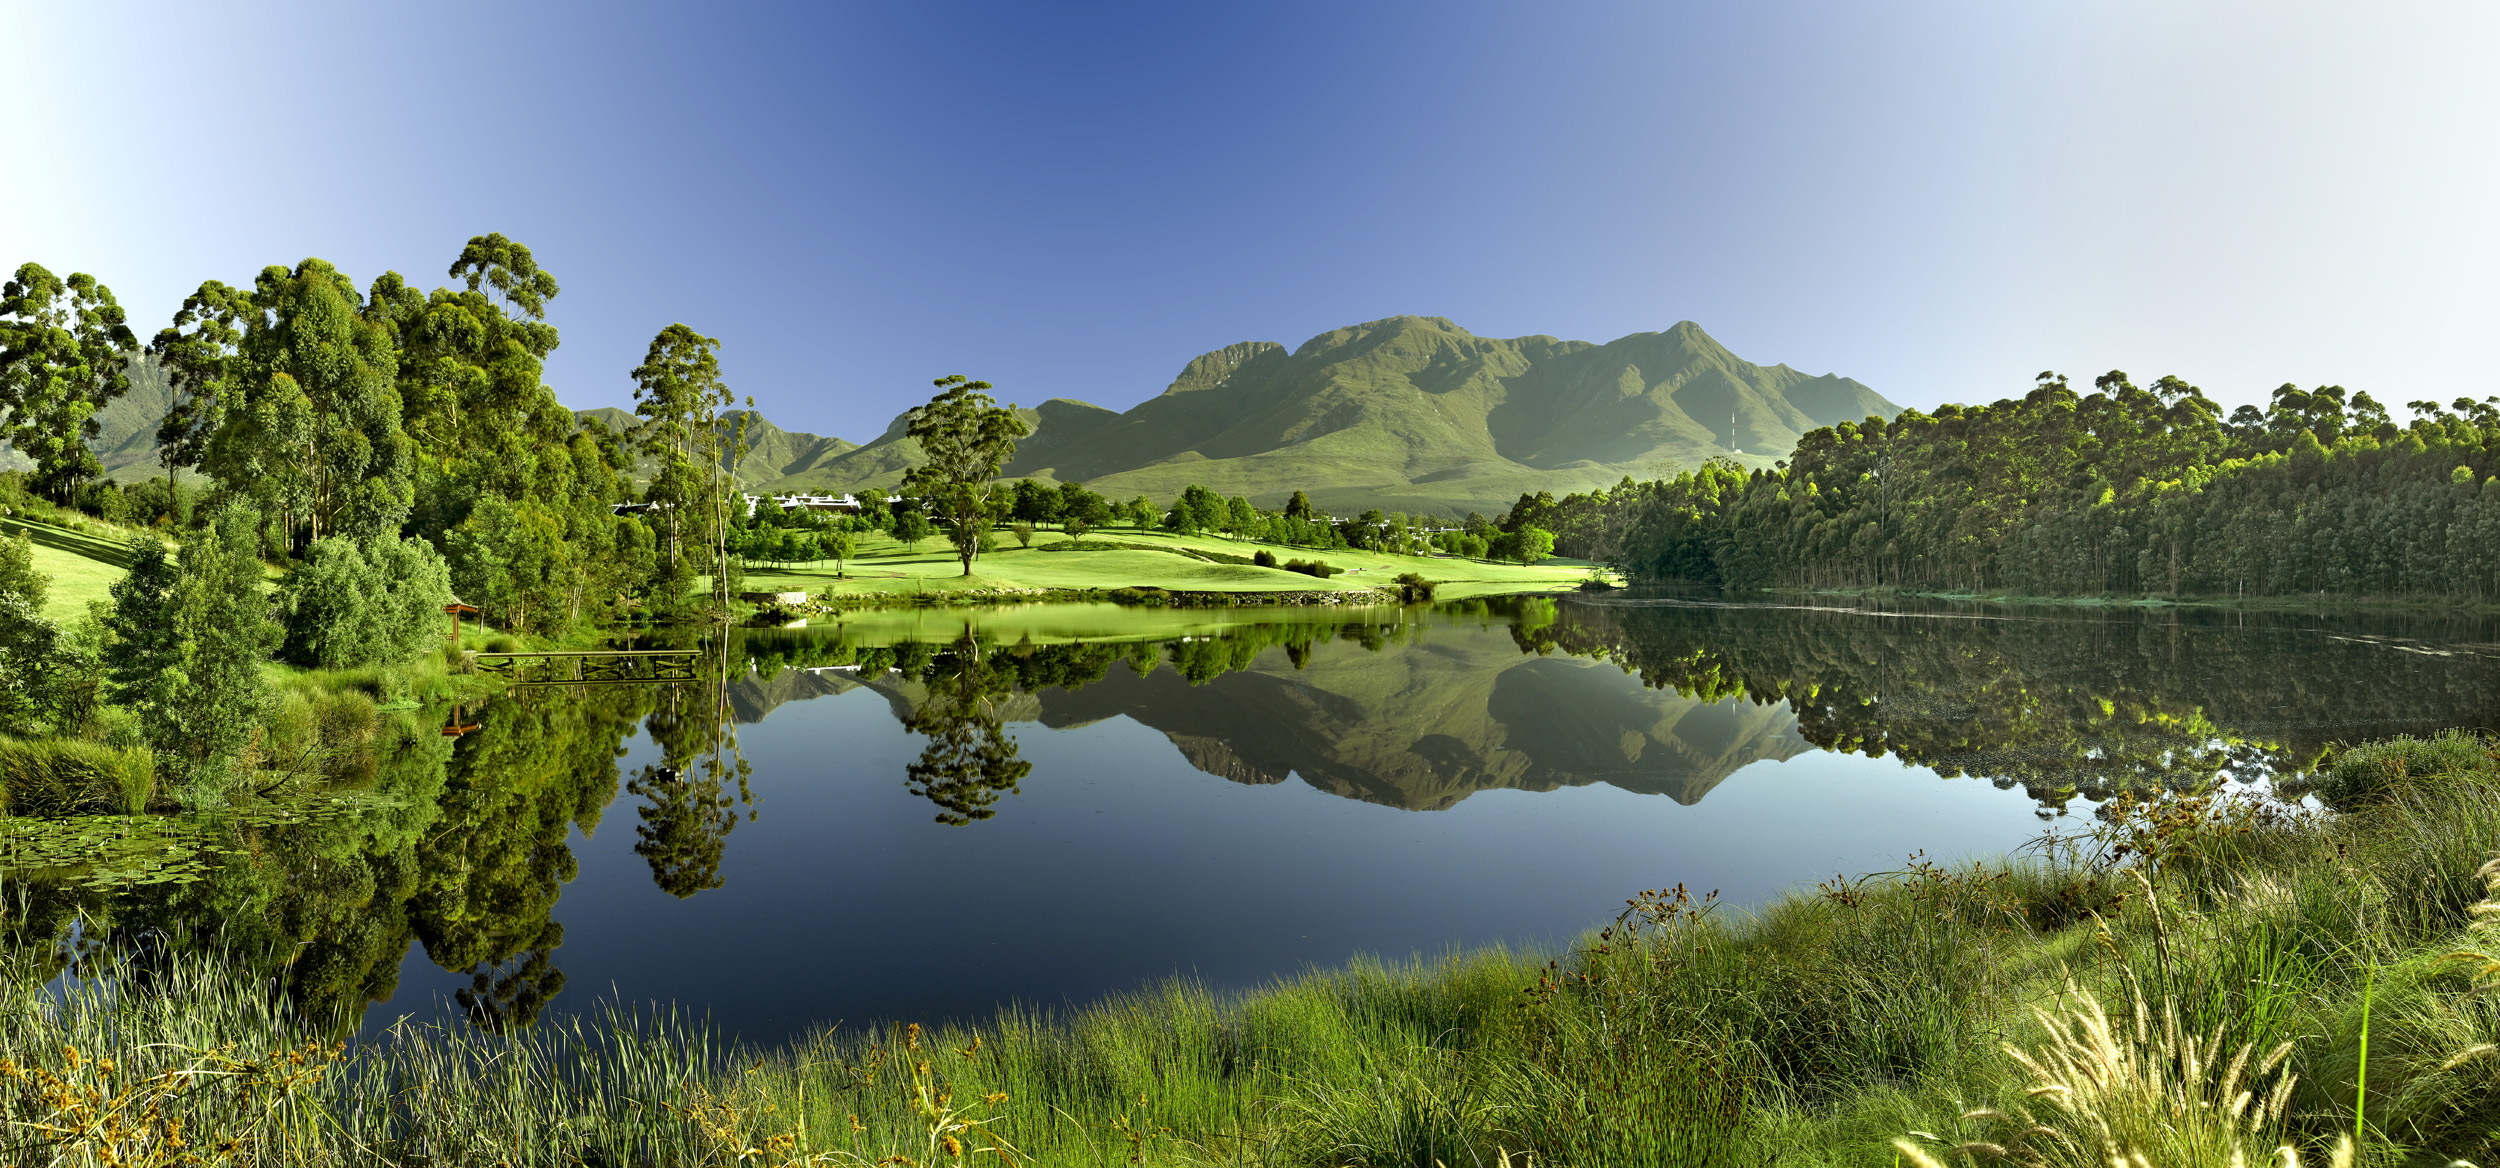 Fancourt, George, South Africa.Nov 2006.